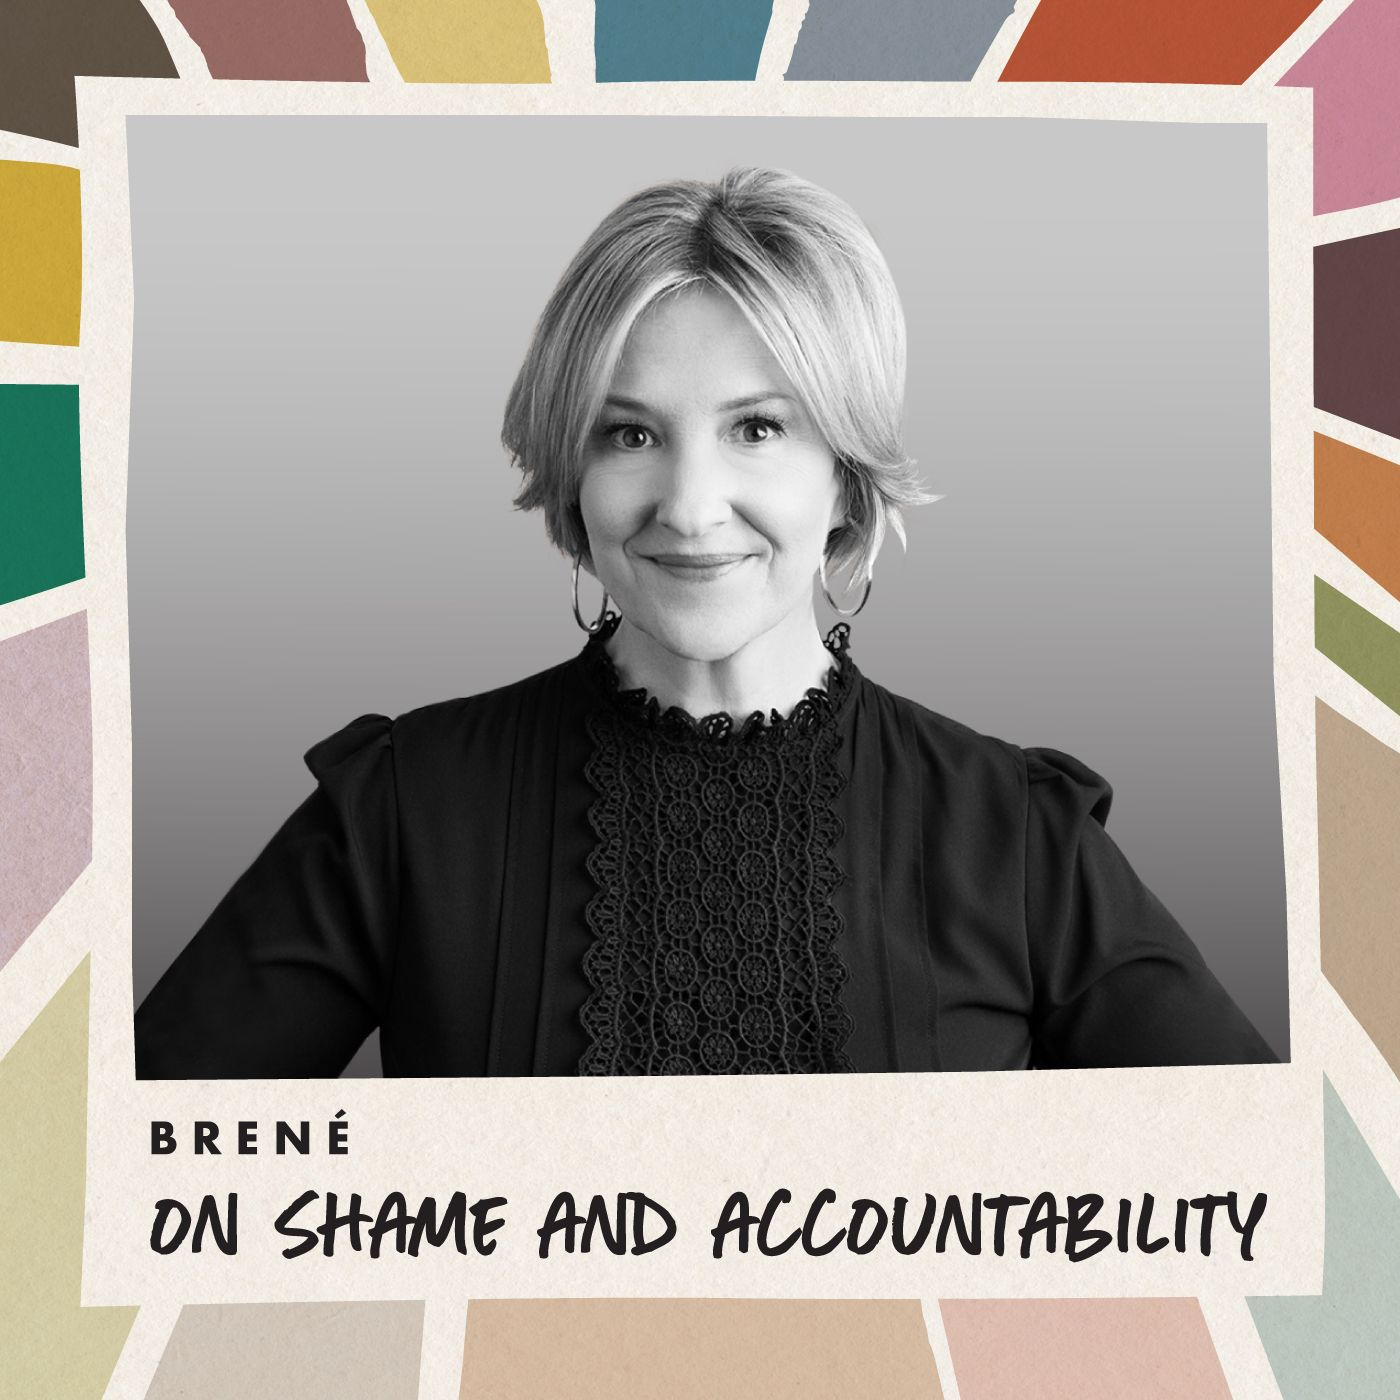 Brené on Shame and Accountability